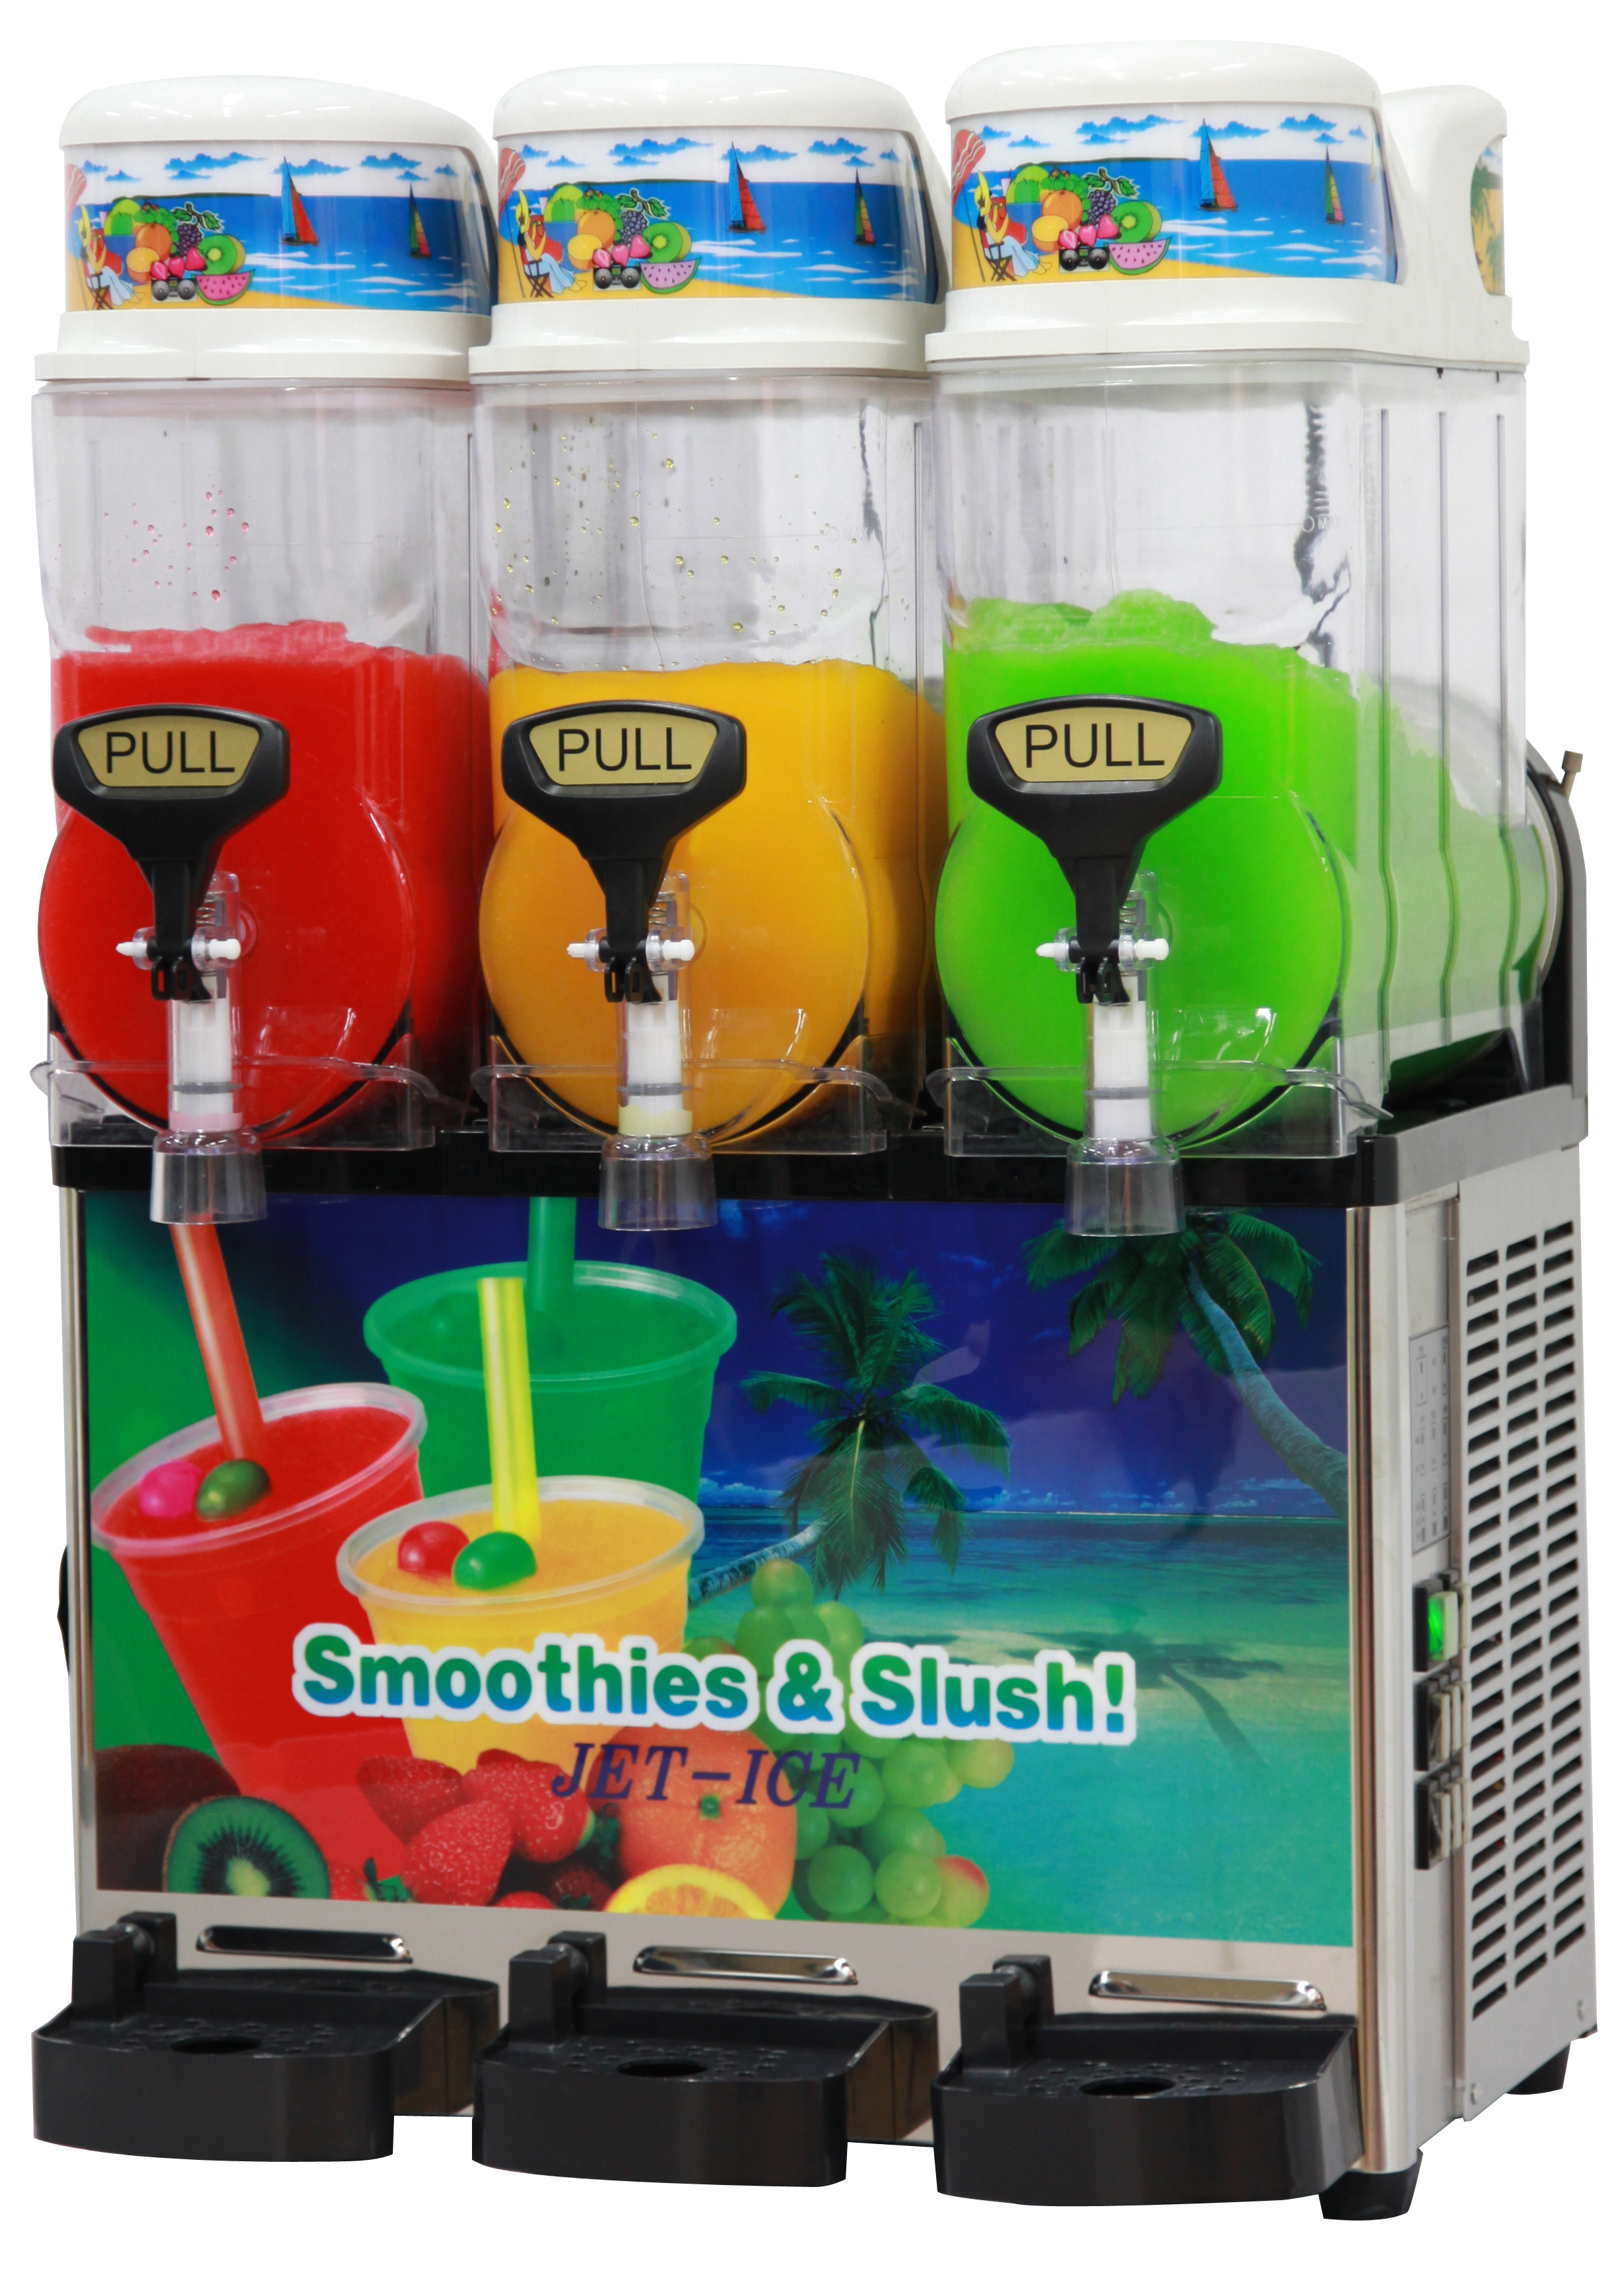 SSM420 Icetro 3 Bowl Slush Machine